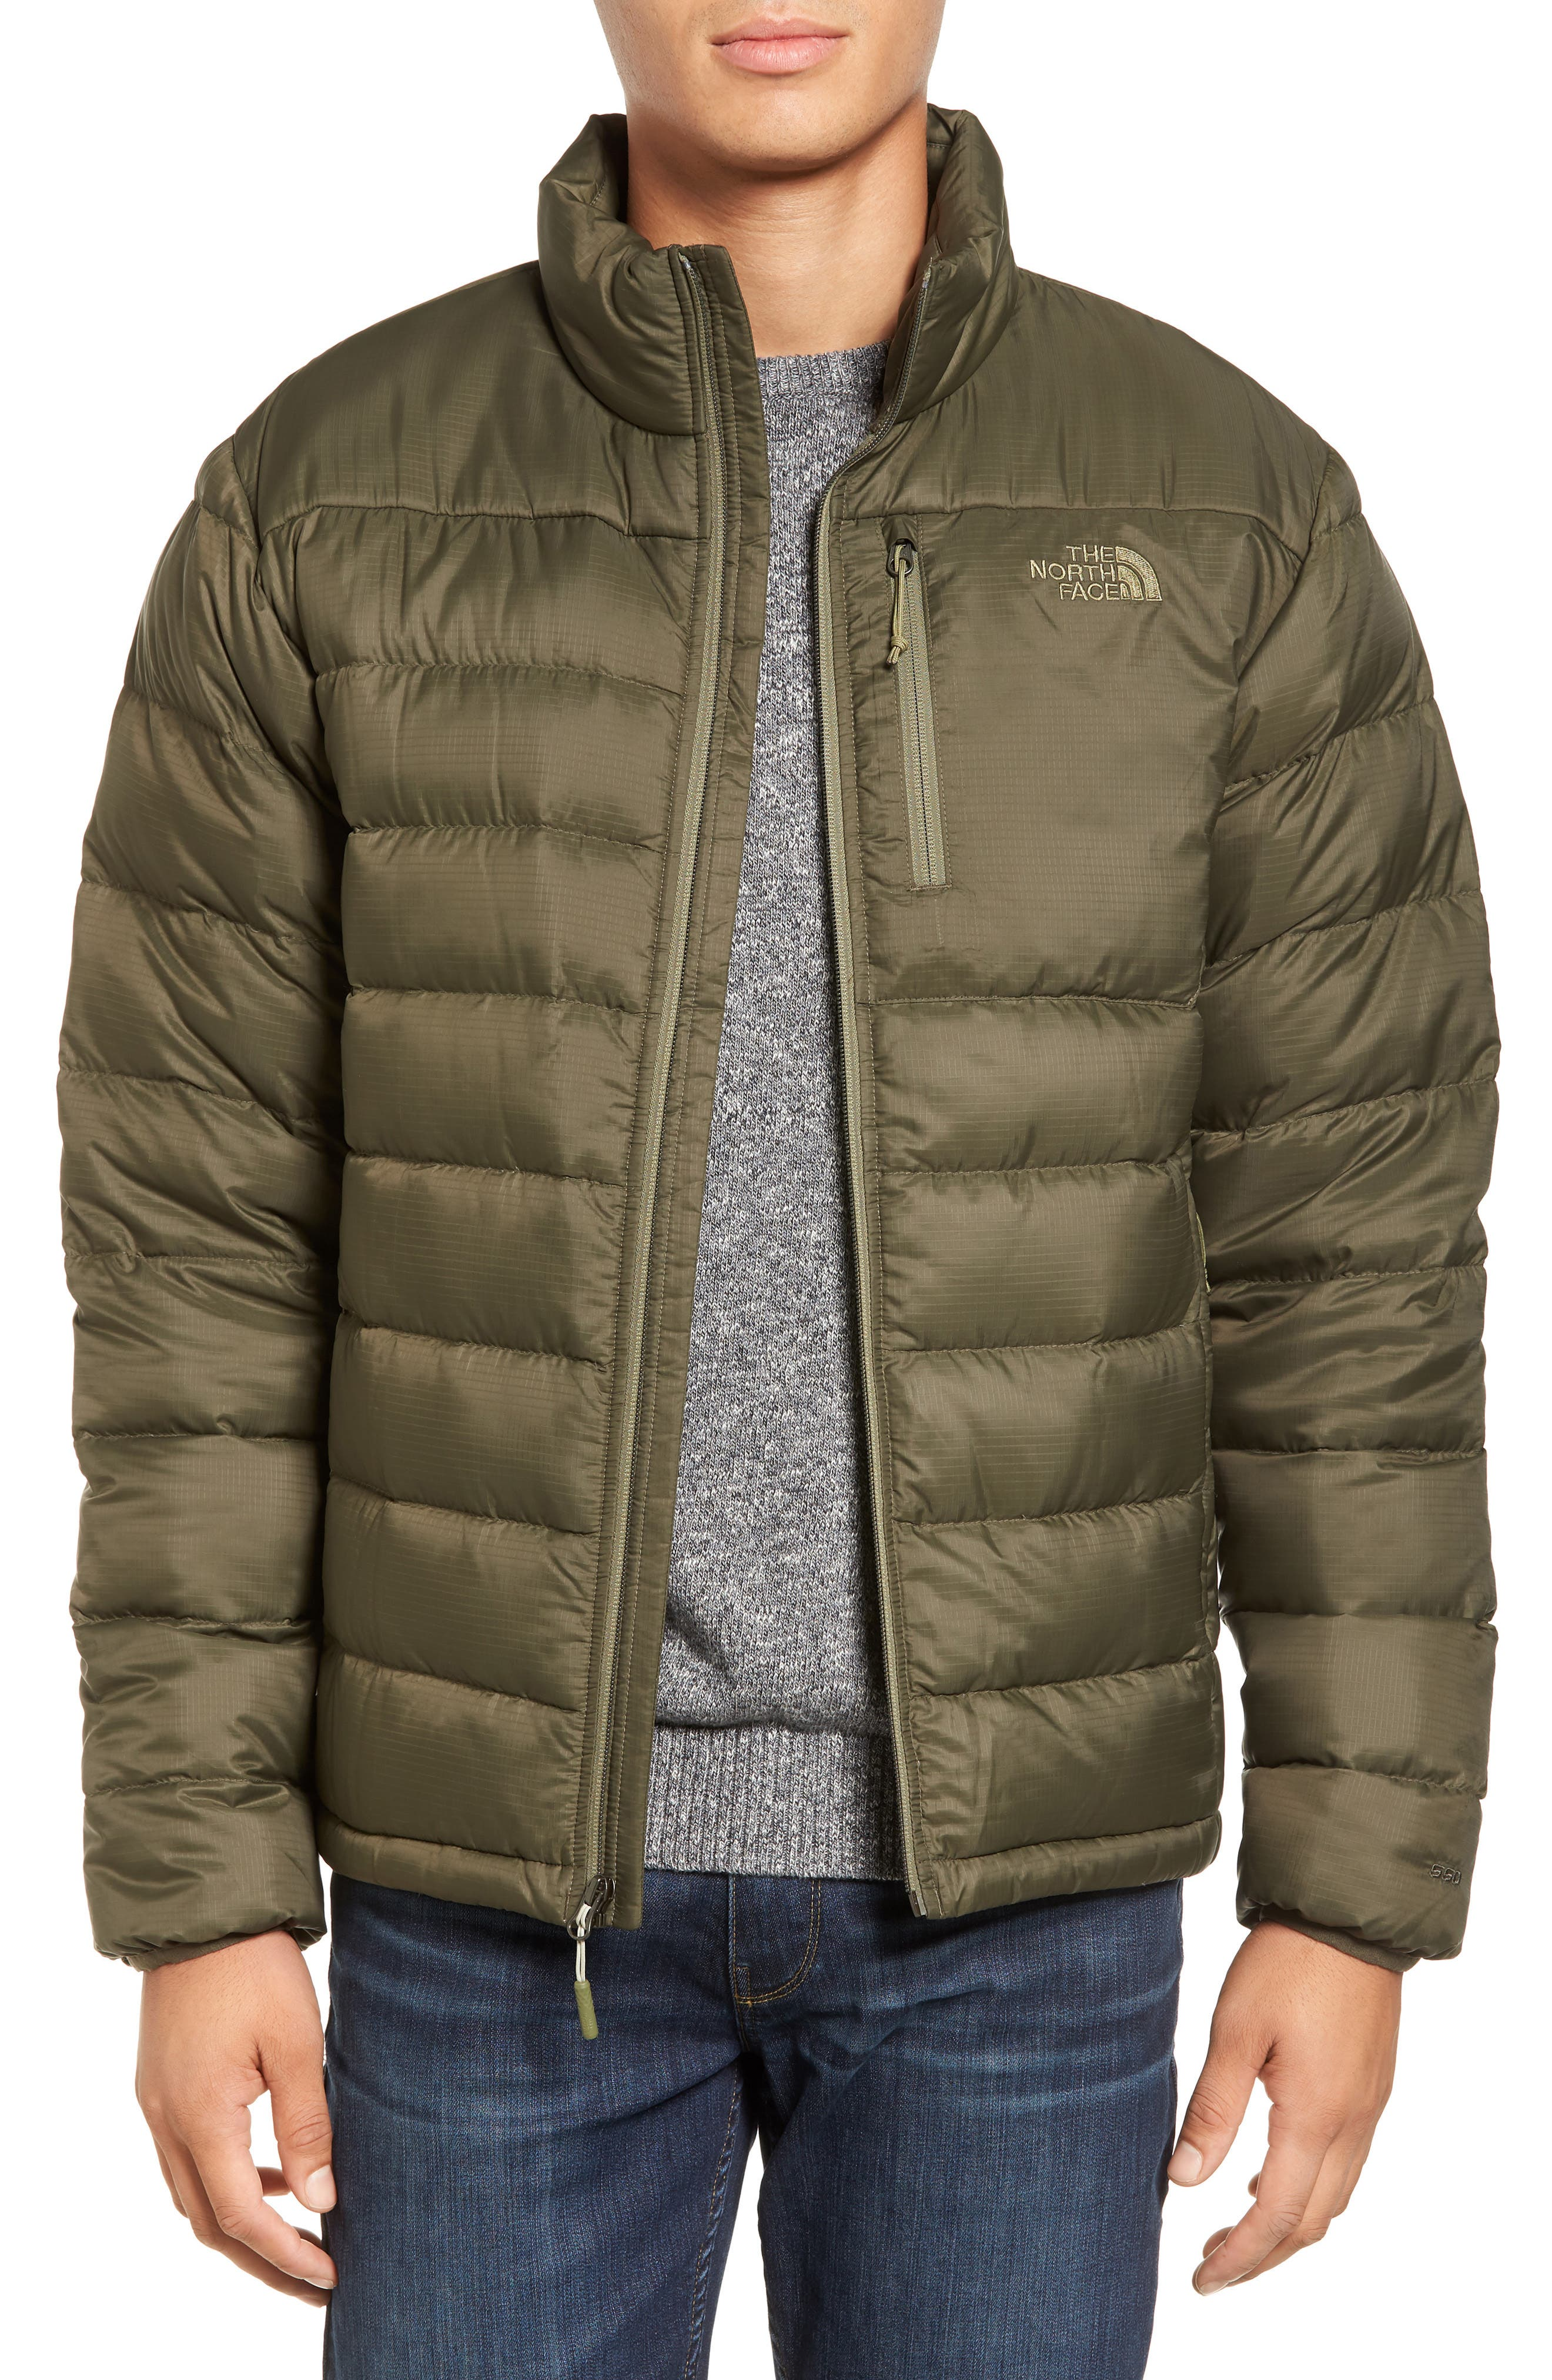 Alternate Image 1 Selected - The North Face 'Aconcagua' Goose Down Jacket